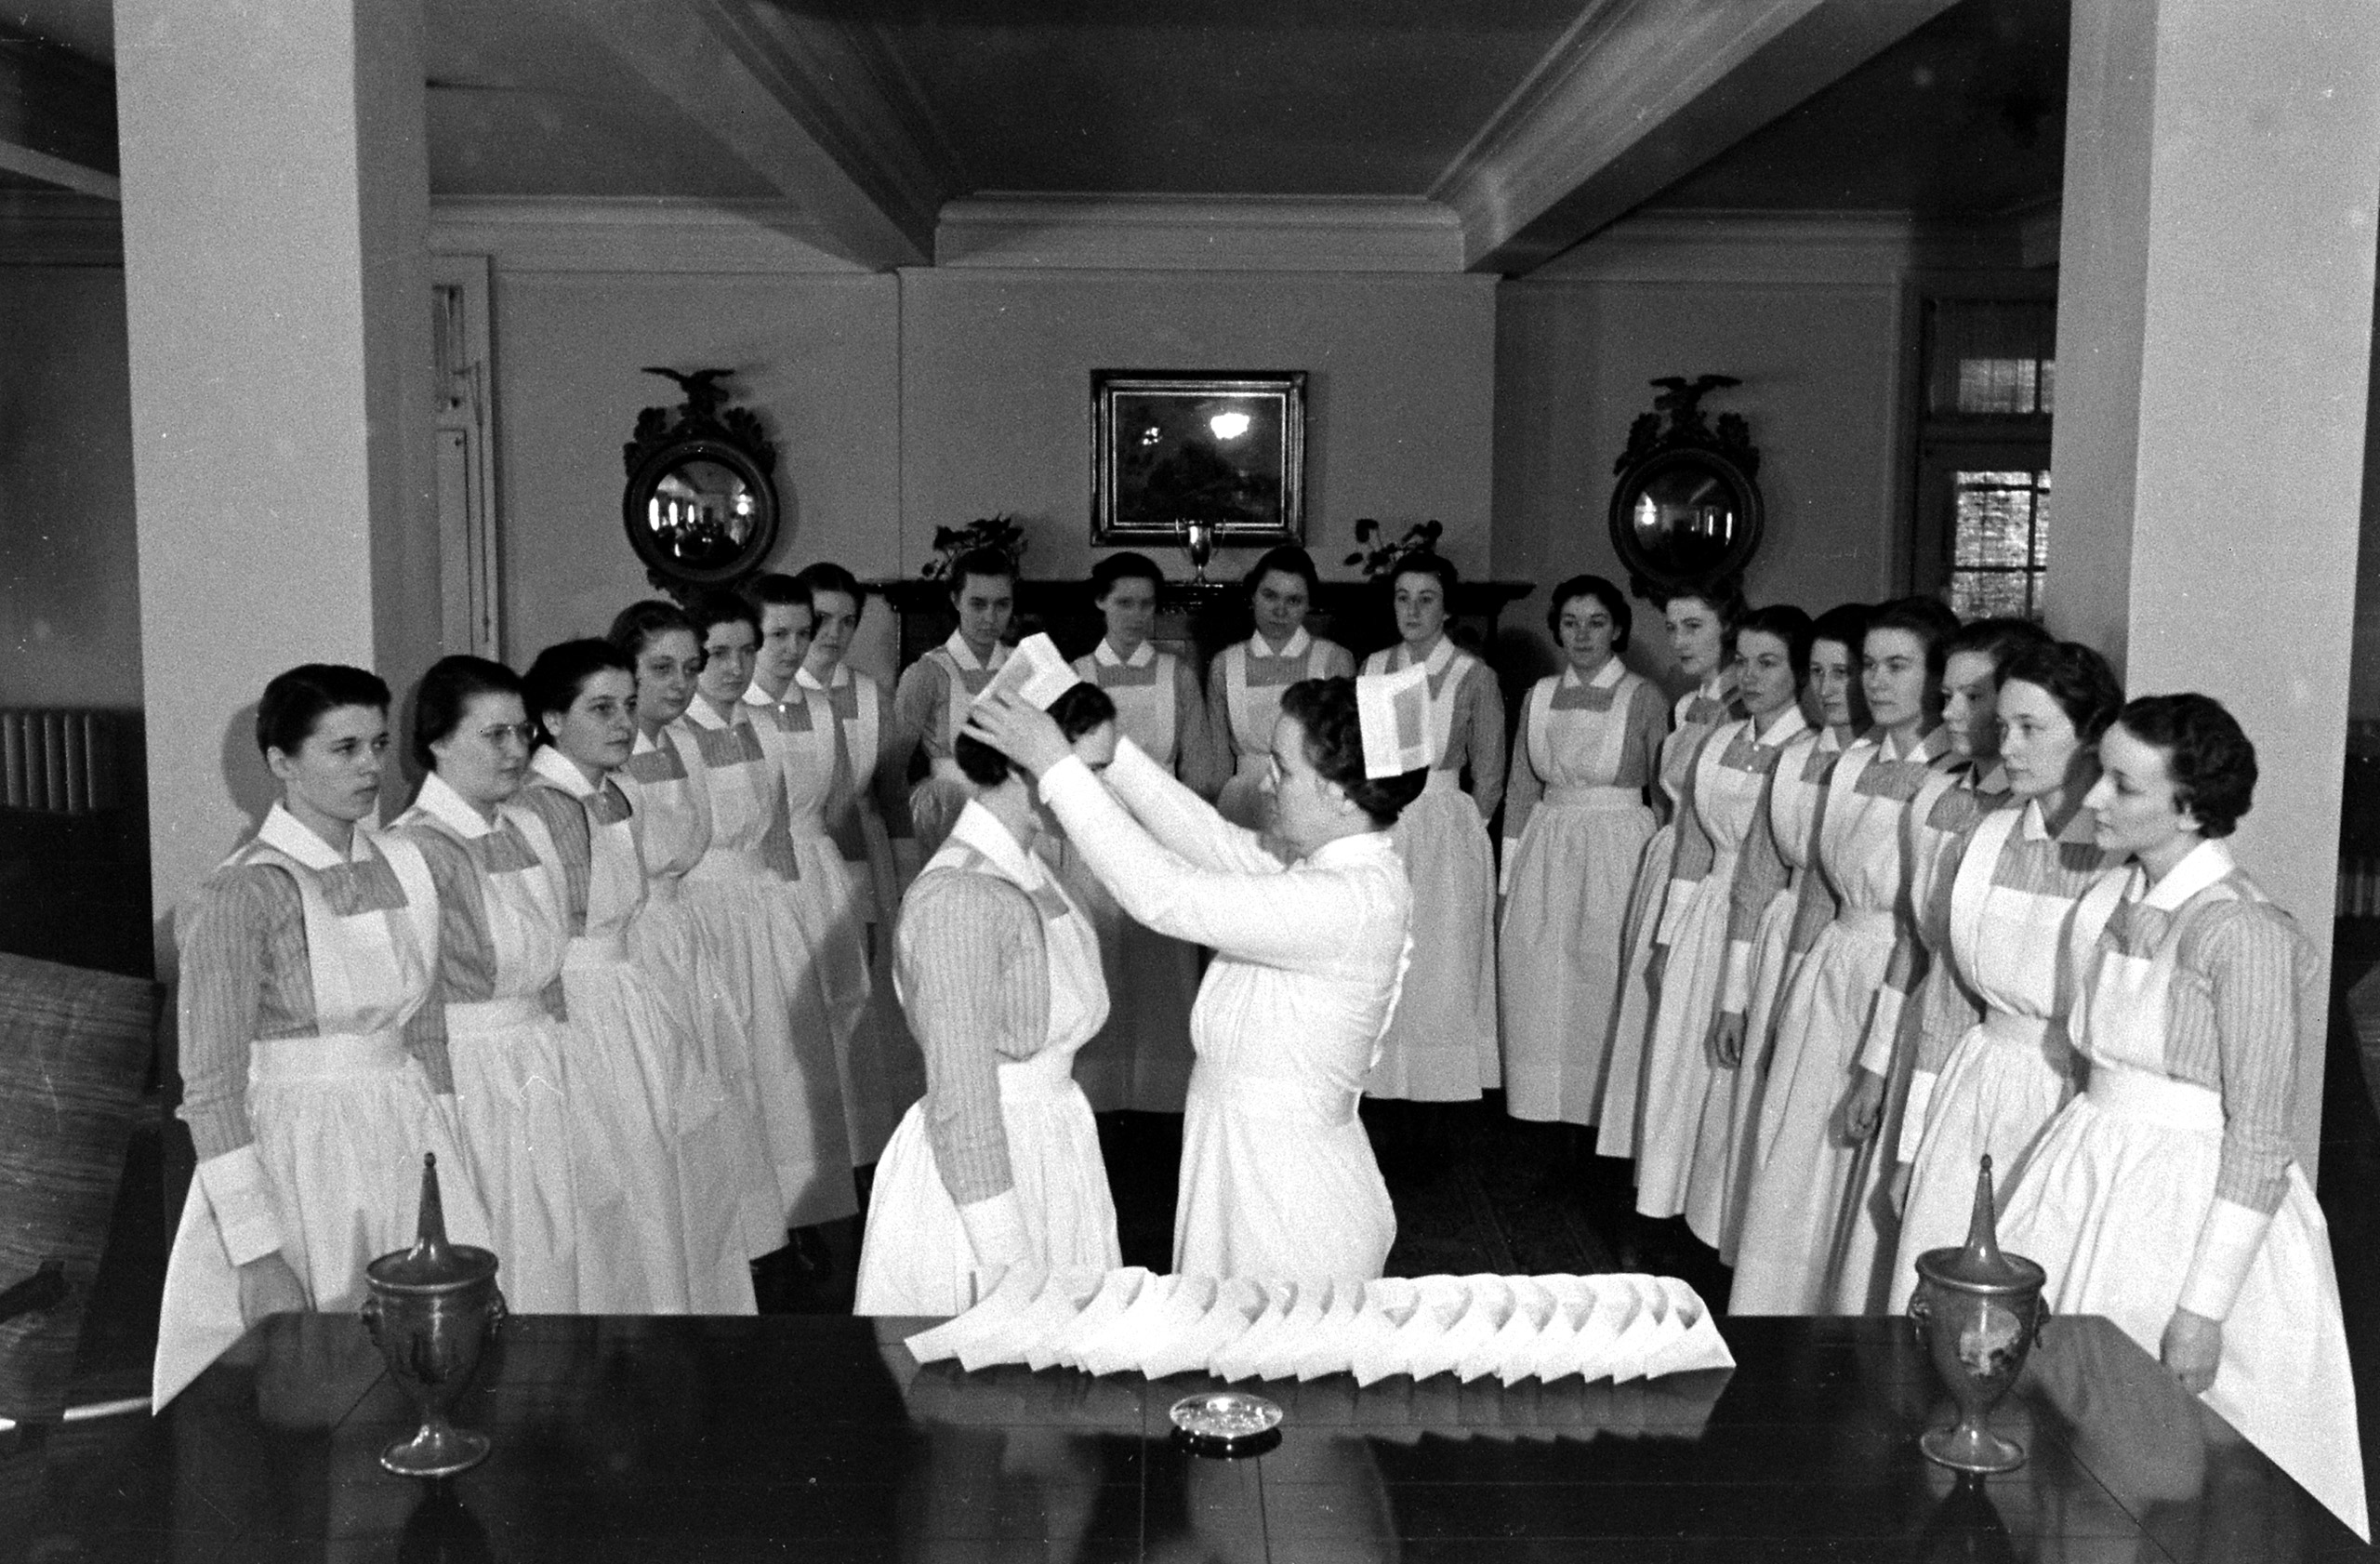 """<b>Caption from LIFE.</b> """"Capping"""" services take place in the reception room of the Nurses' Home. The novices, having successfully passed examinations for their crucial first six months, are now permitted to wear bibbed apron, the striped uniform and the cap of the full-fledged student nurse."""